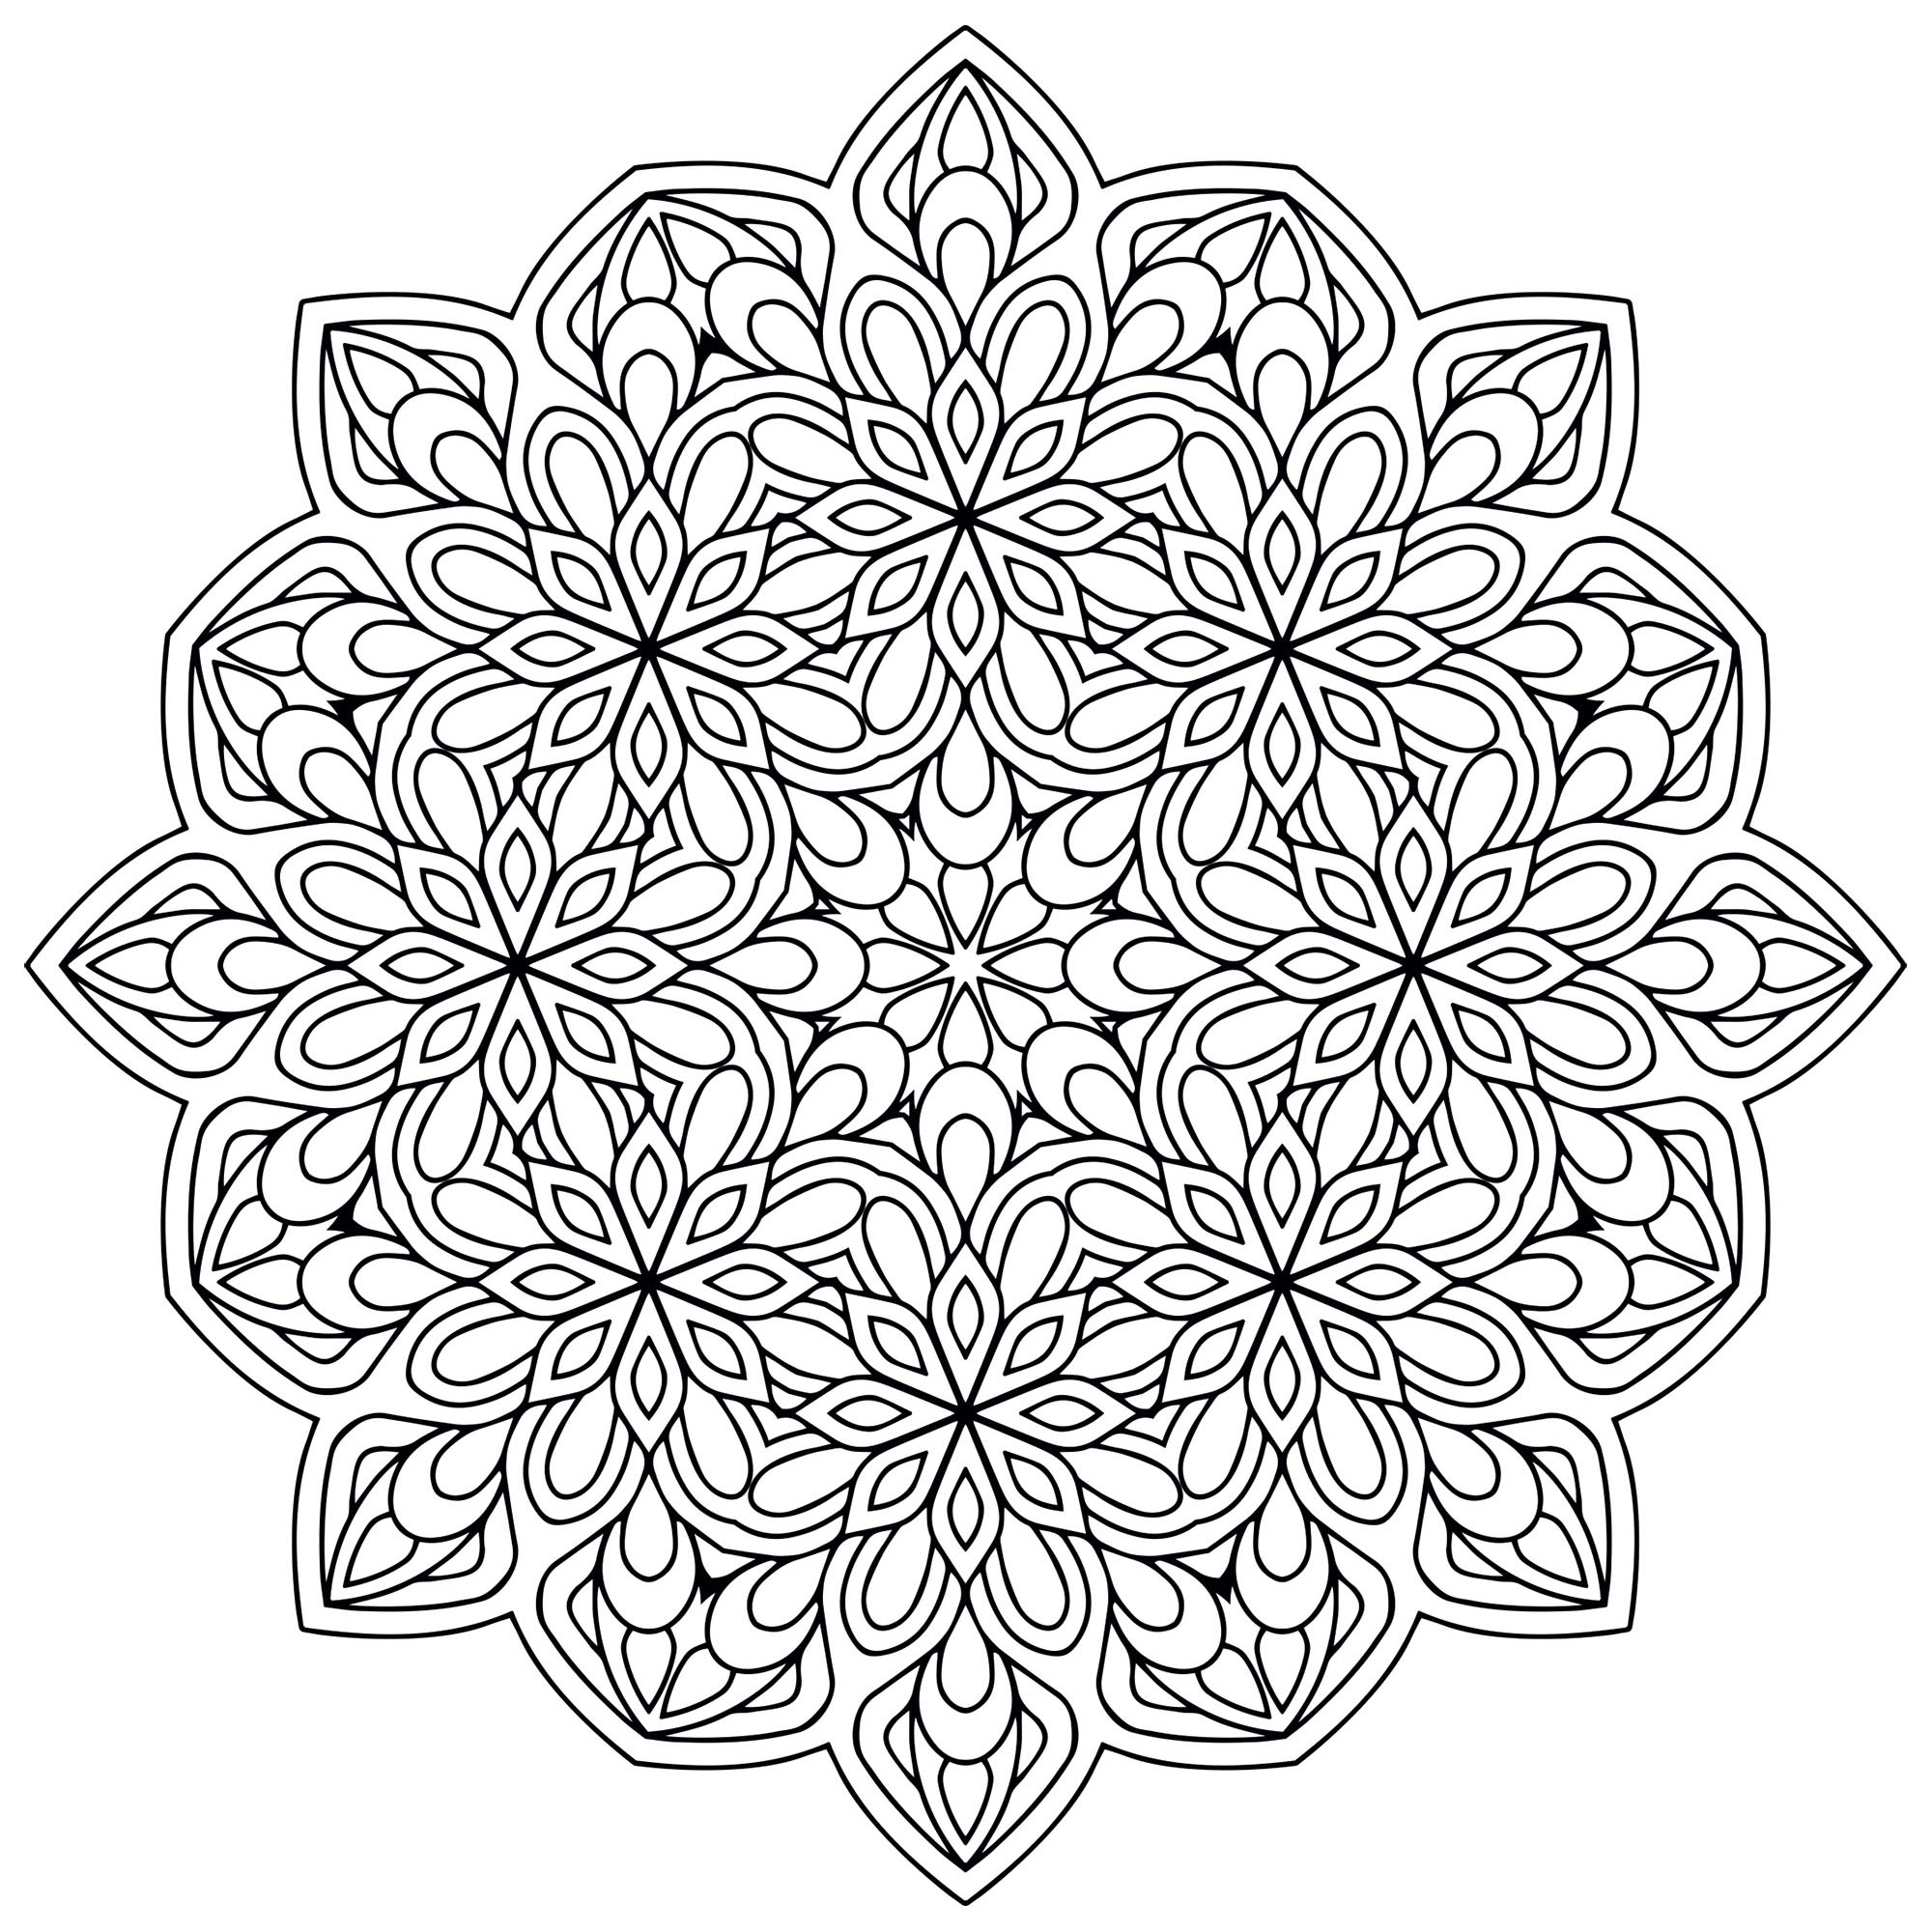 A Mandala of 'standard' difficulty level, which will be suitable for kids and adults who just want to color. Still your mind : this step is essential to get the most out of coloring to reduce your stress.